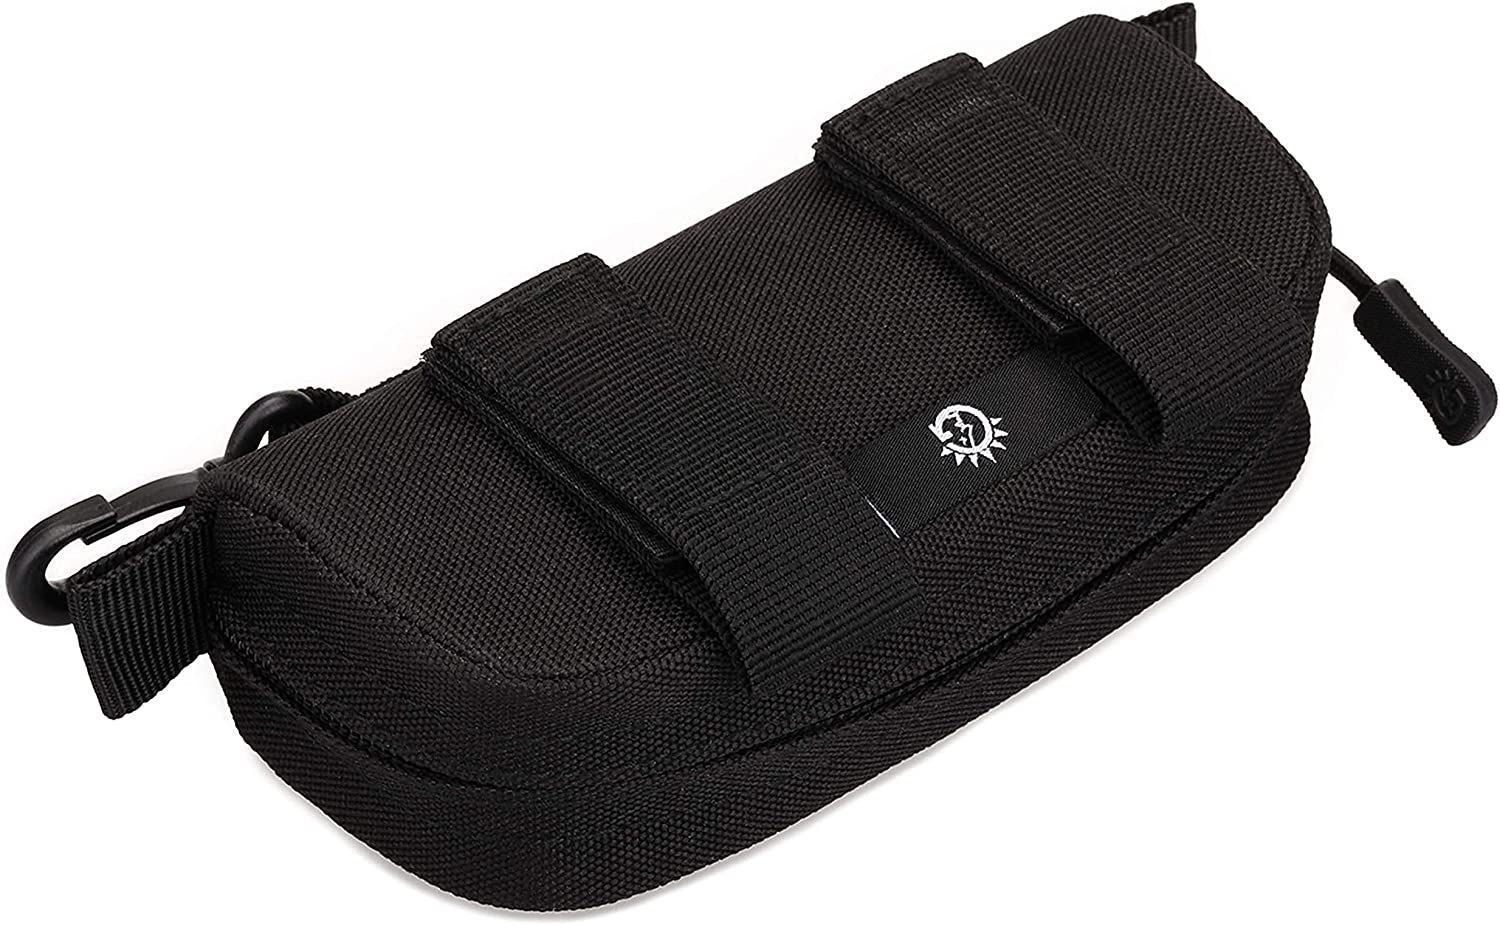 Huntvp Tactical Eyeglasses Hard Case Molle Zipper Sunglasses Carrying Case Nylon with Clip